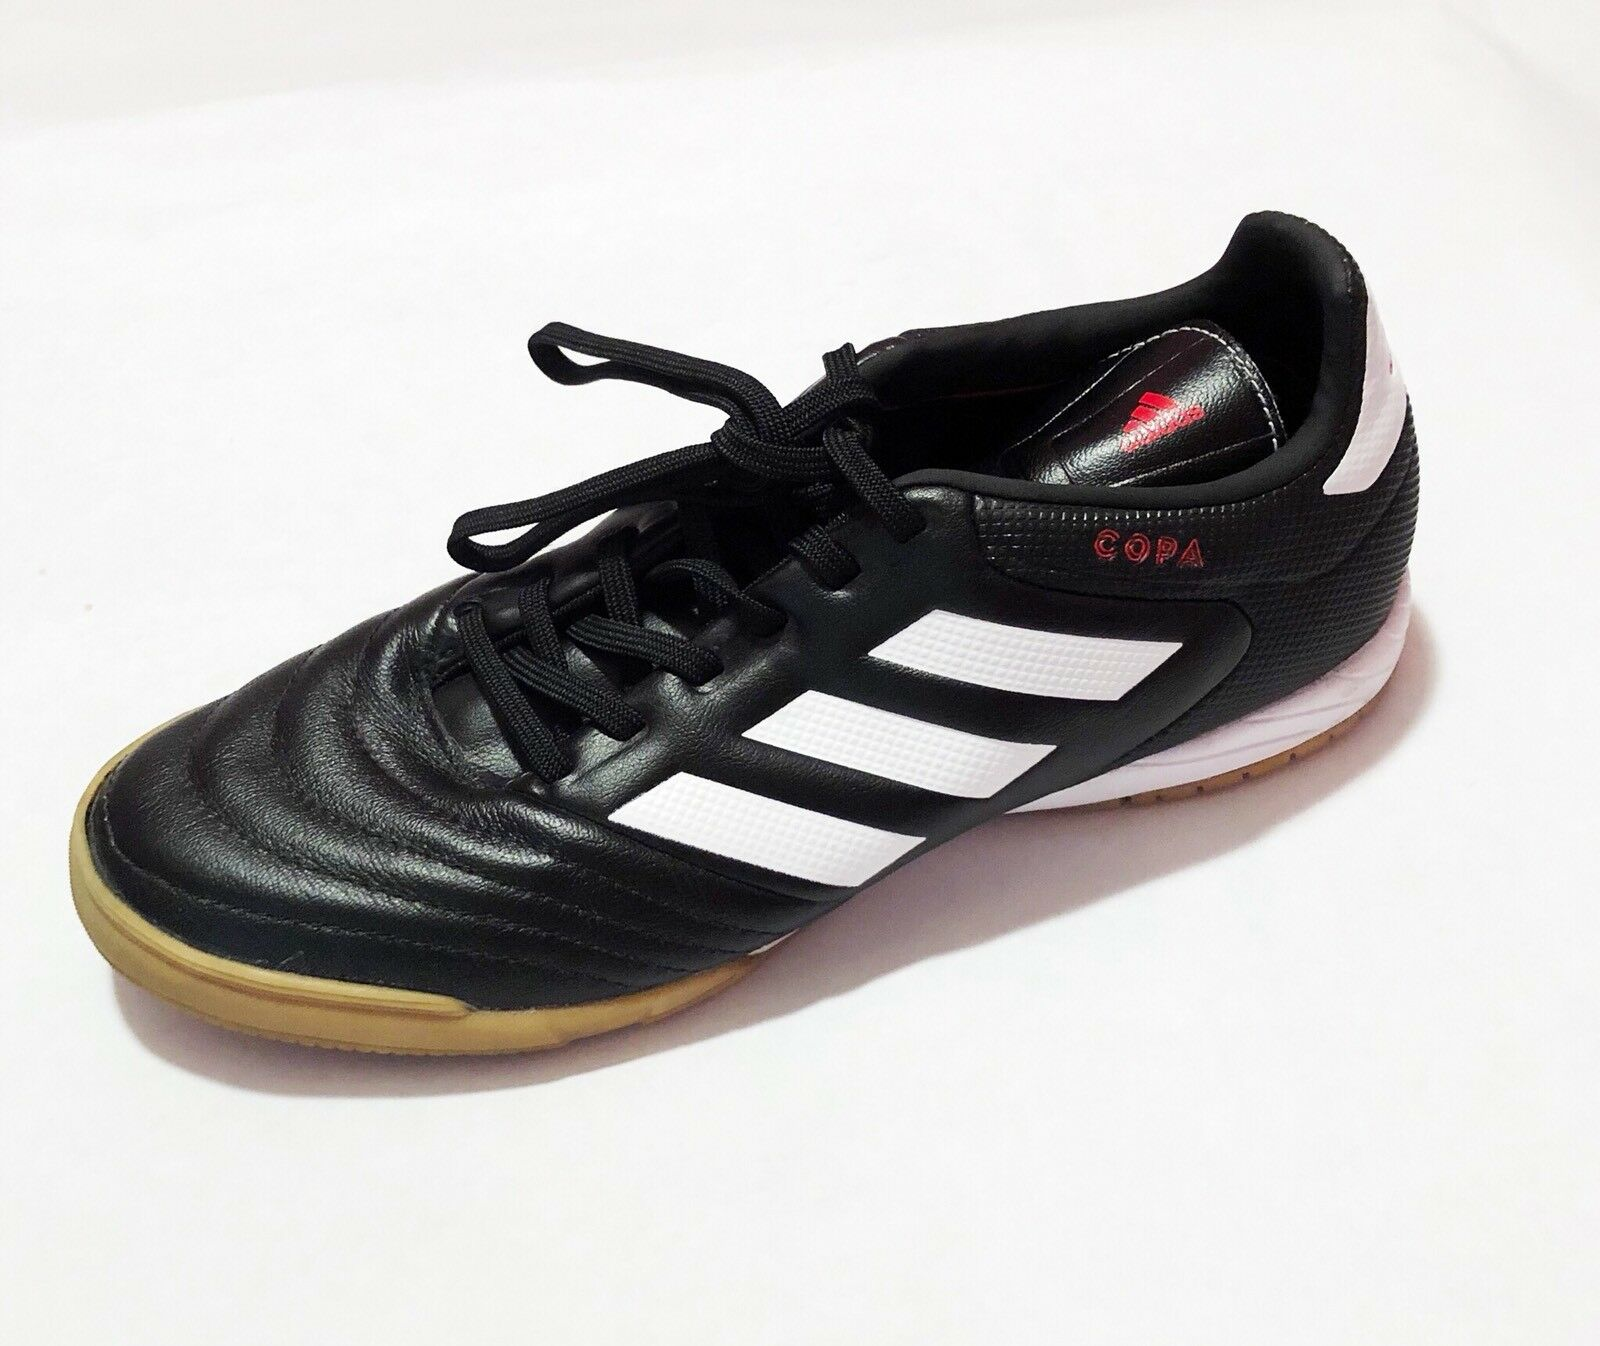 Adidas Copa Mens Size Black Indoor Soccer Shoes White Stripes Size Mens US 7 b02897